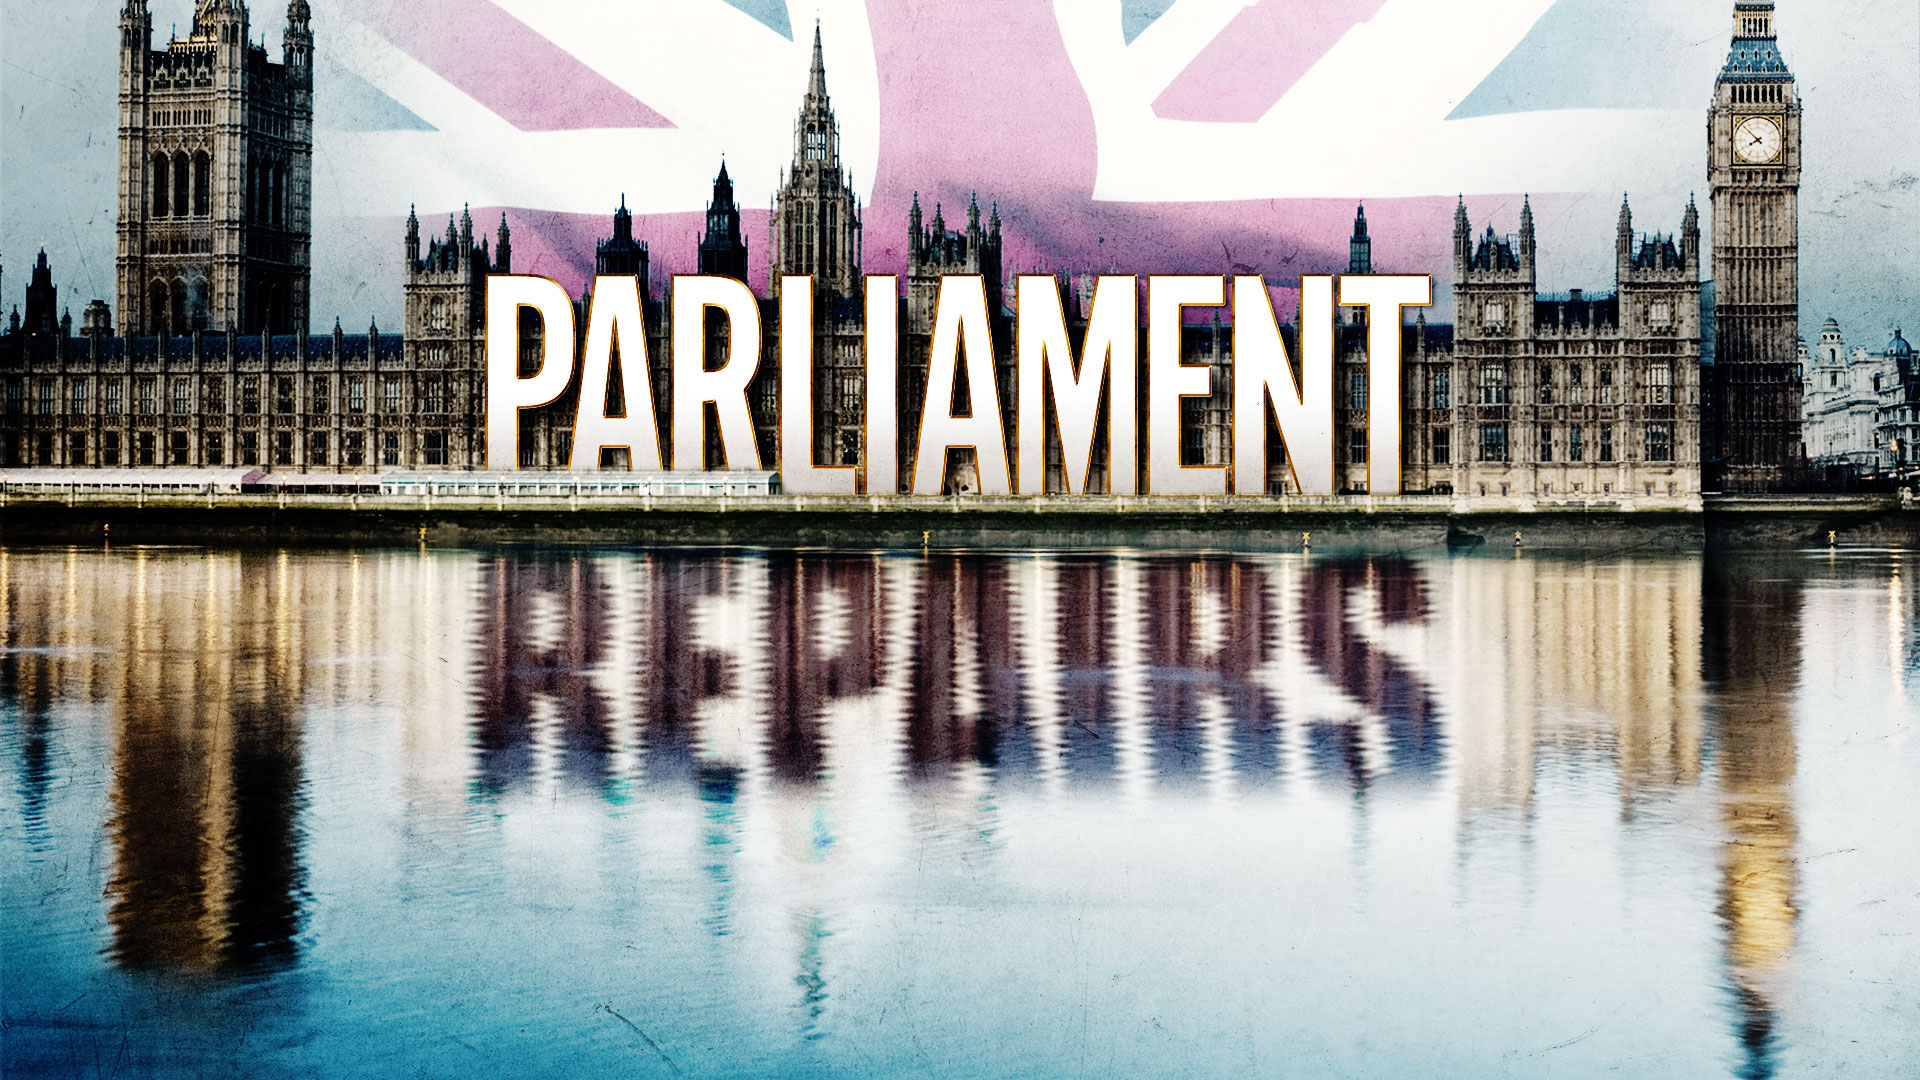 Parliament-Repairs-090816-cc